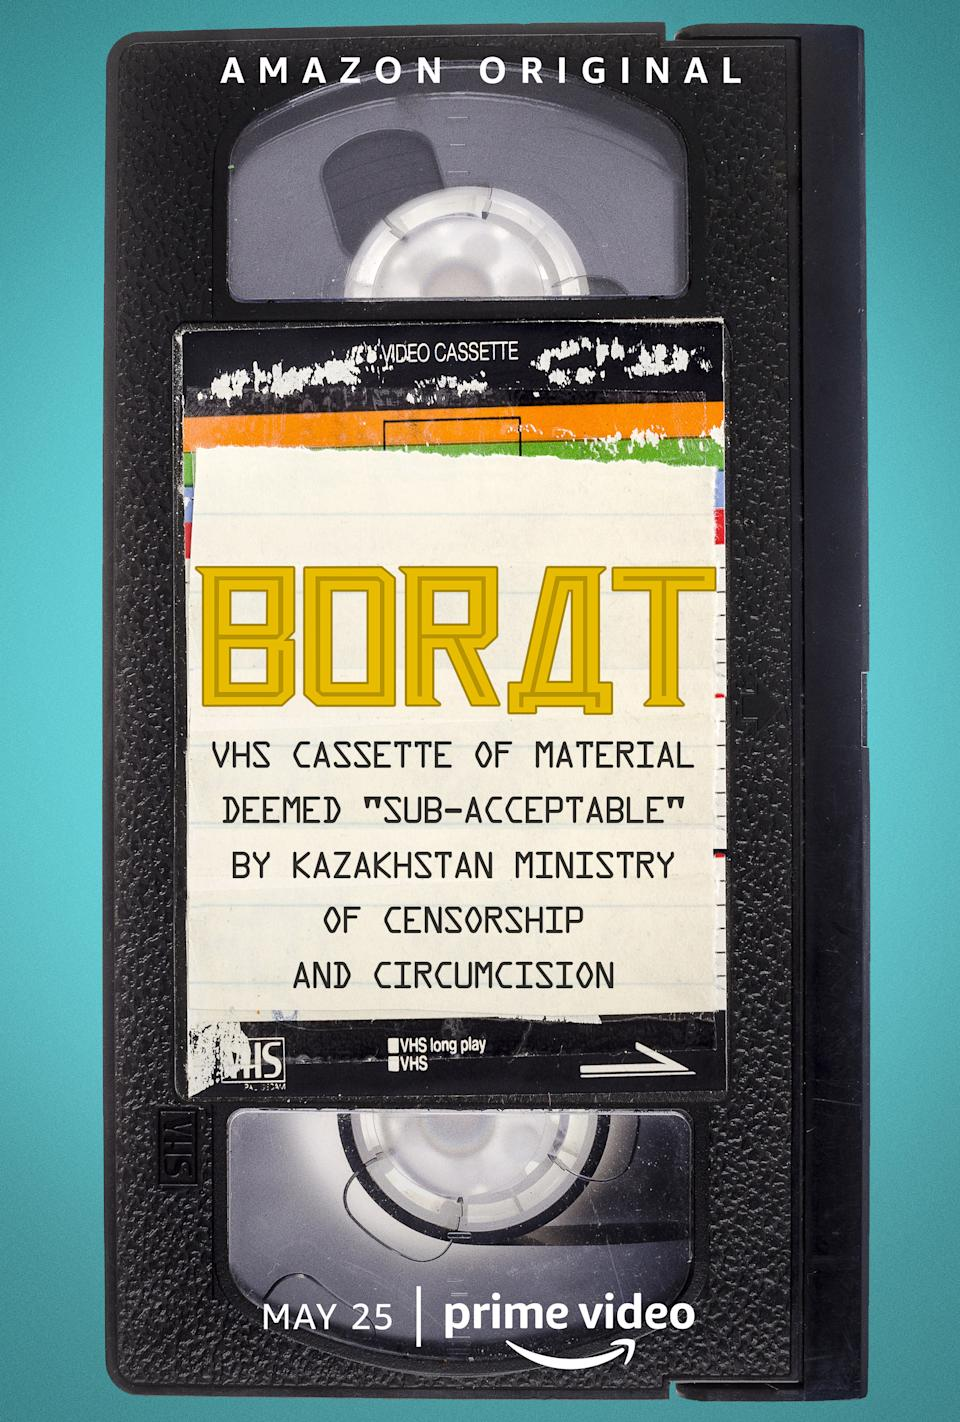 """Borat: VHS Cassette of Material Deemed """"Sub-acceptable"""" By Kazakhstan Ministry of Censorship and Circumcision features never before seen footage from the Oscar-nominated movie Borat Subsequent Moviefilm. (Amazon)"""